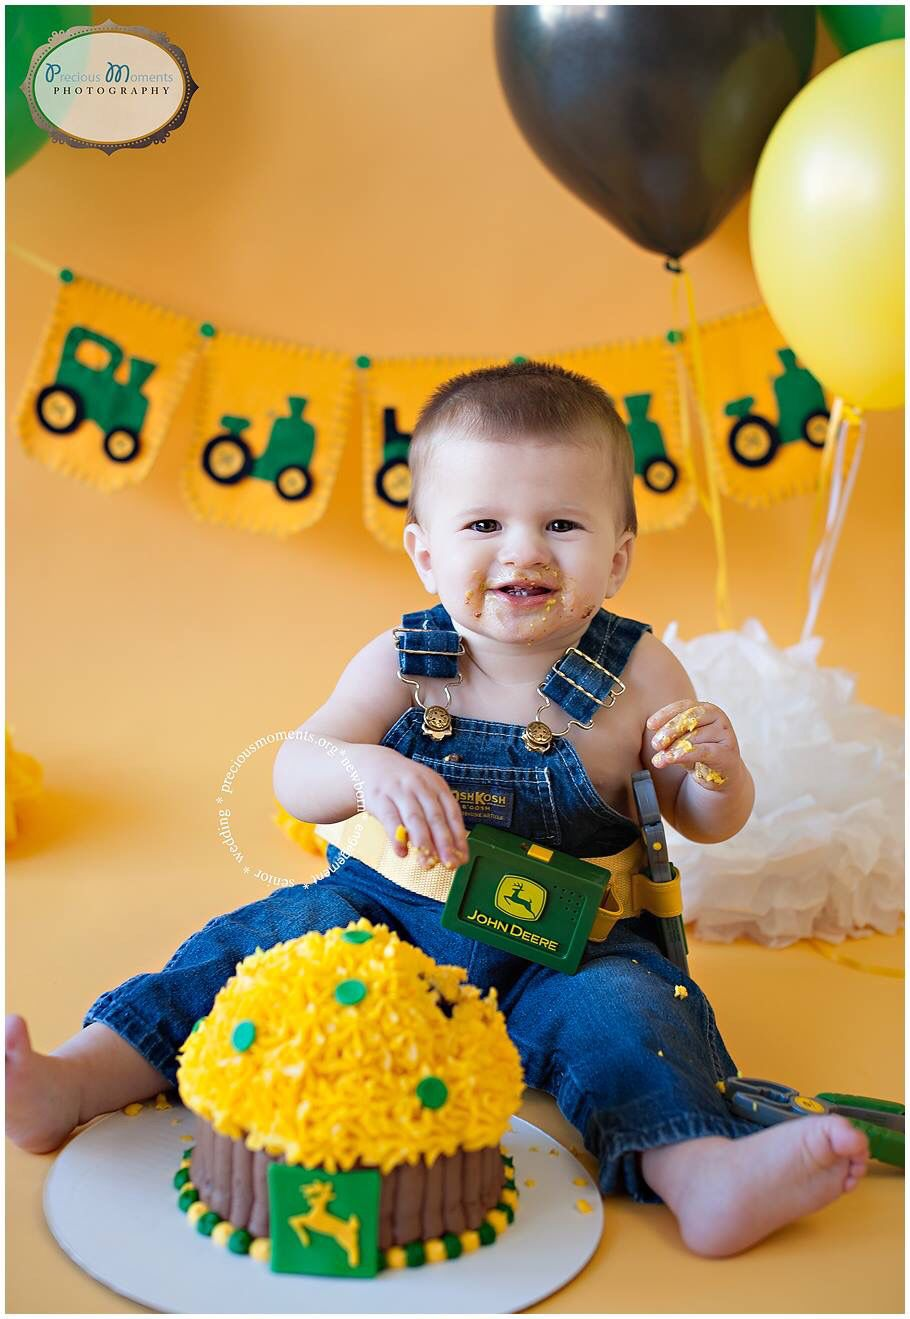 Pin On Precious Moments Photography